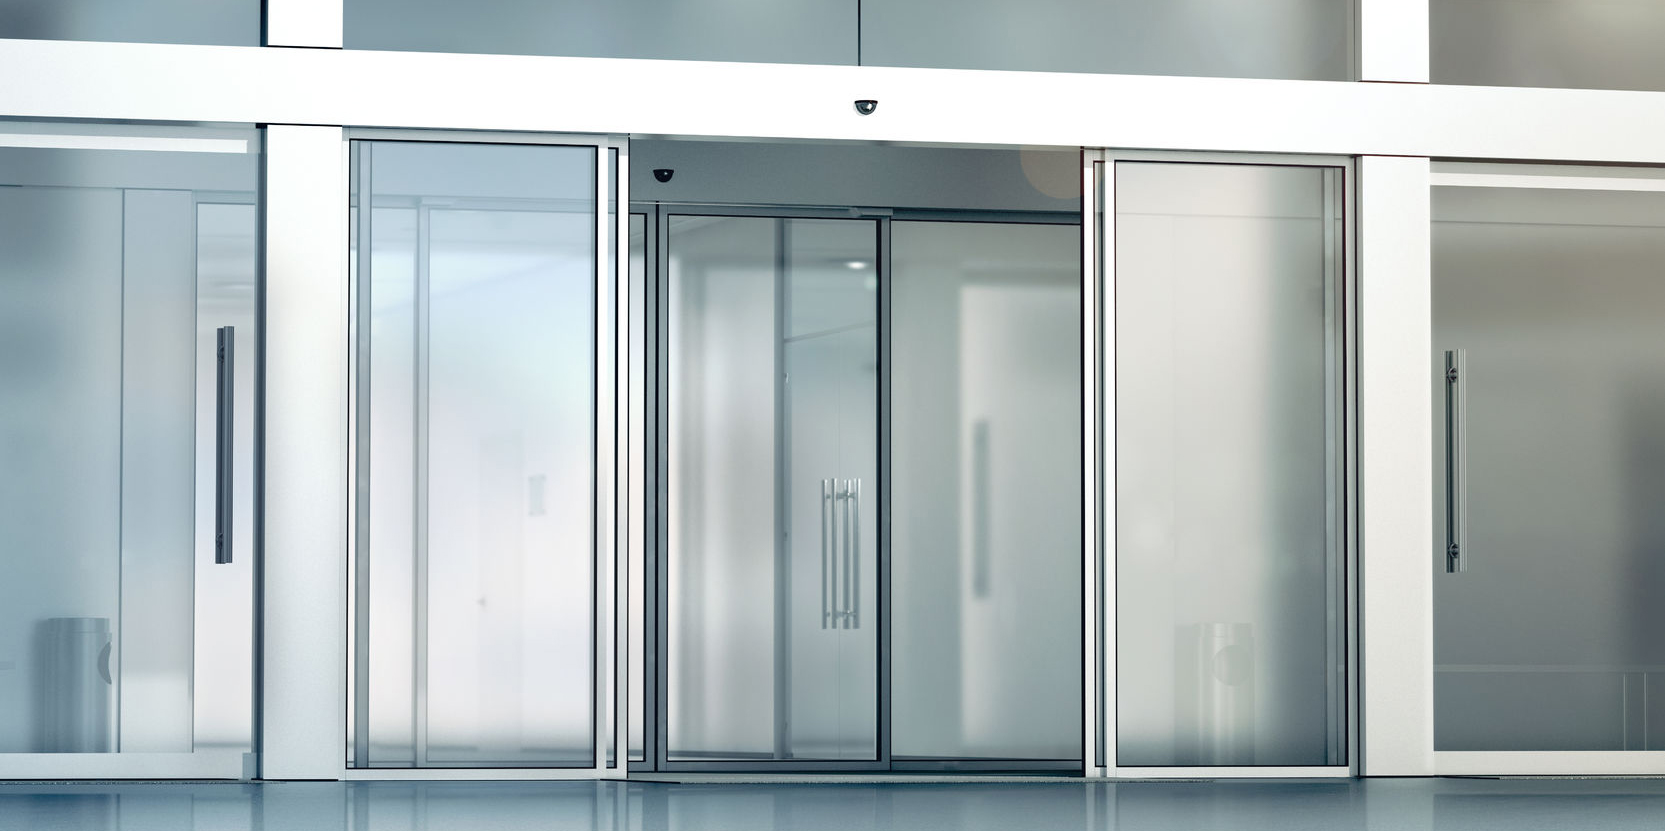 Commercial Automatic Doors Repair Sales Installation 247 Service